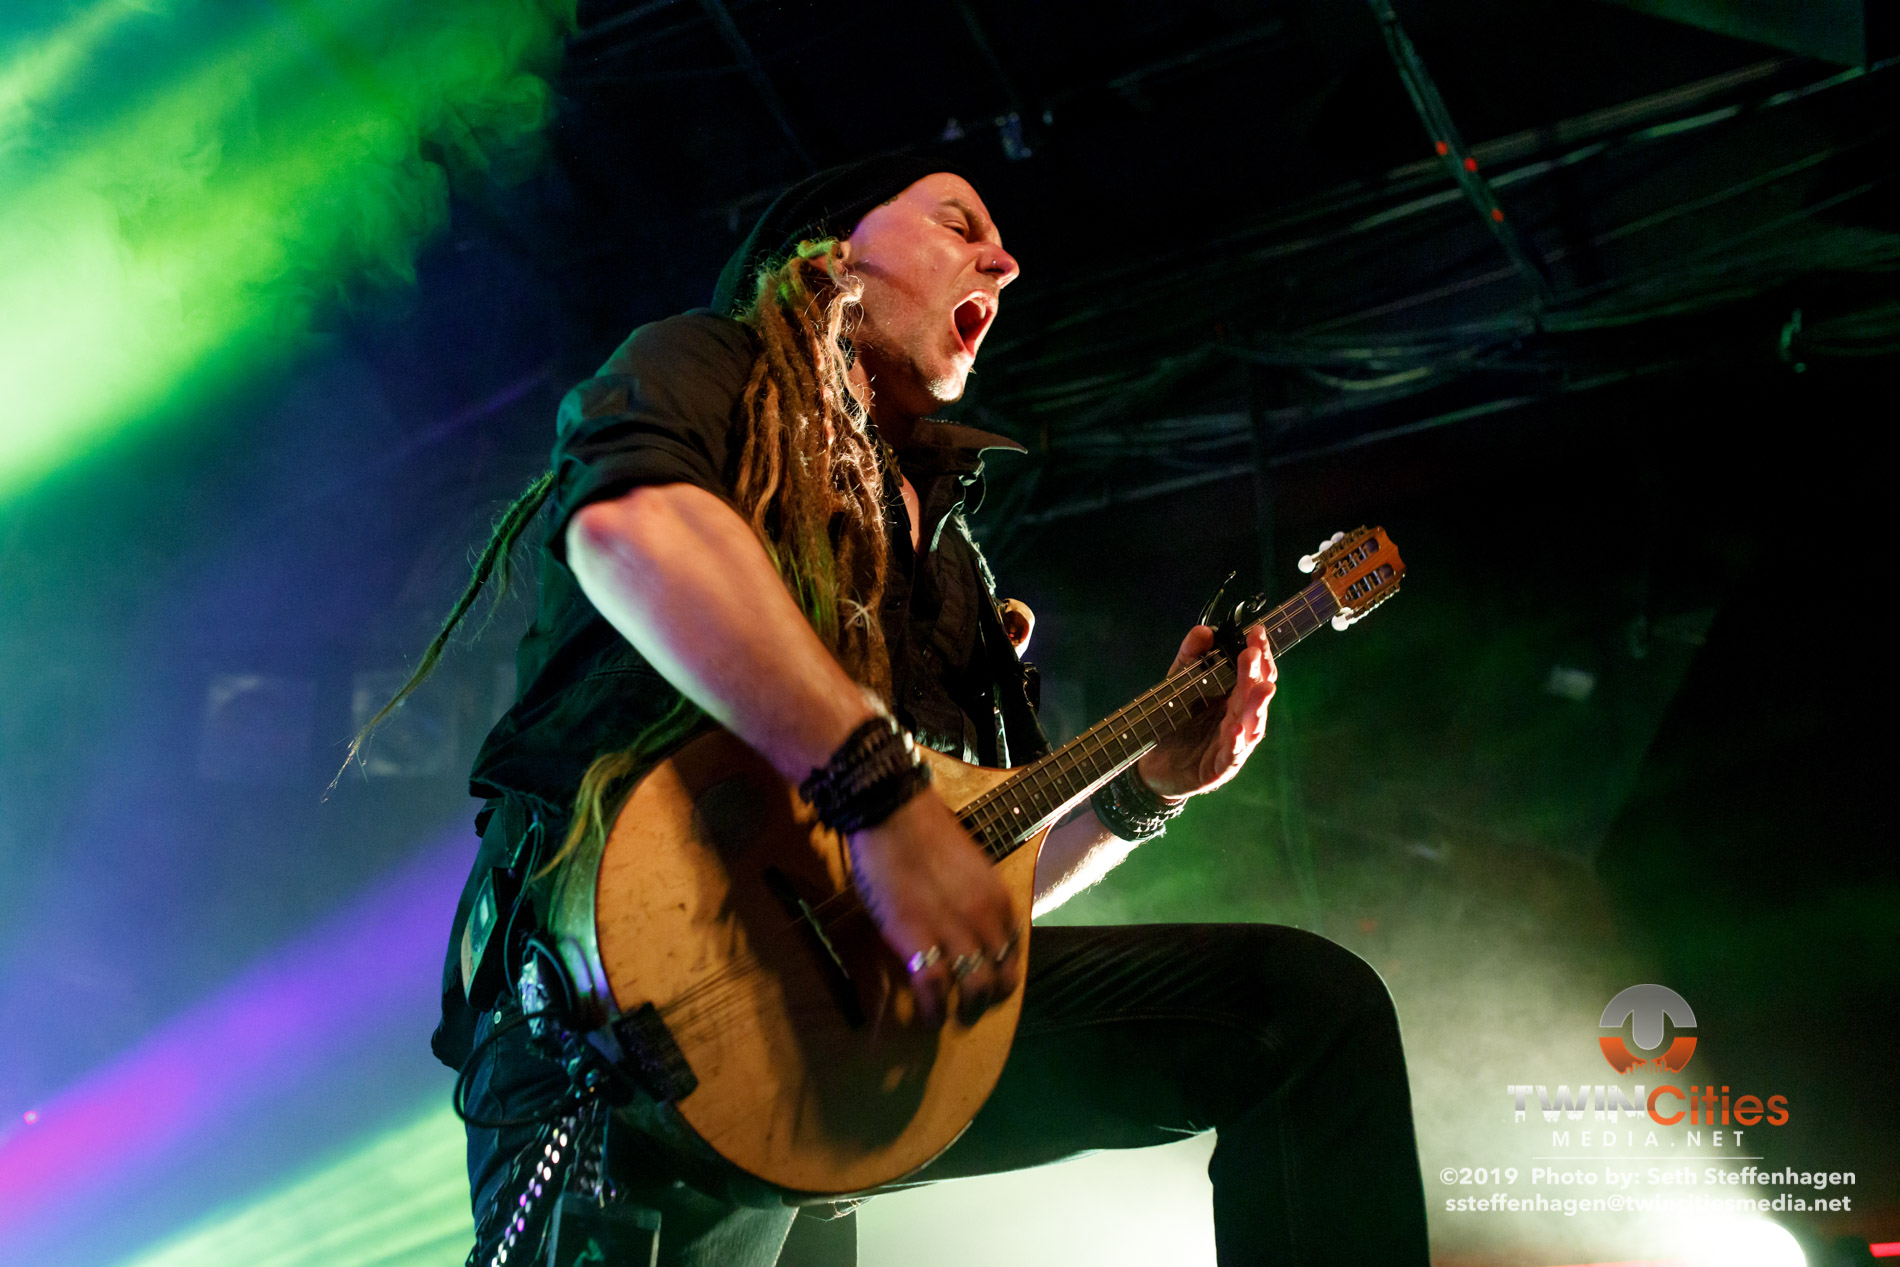 October 5, 2019 - Minneapolis, Minnesota, United States -  Eluveitie live in concert at The Cabooze co-headlining with Korpiklaani and with Gone In April as the openers.(Photo by Seth Steffenhagen/Steffenhagen Photography)